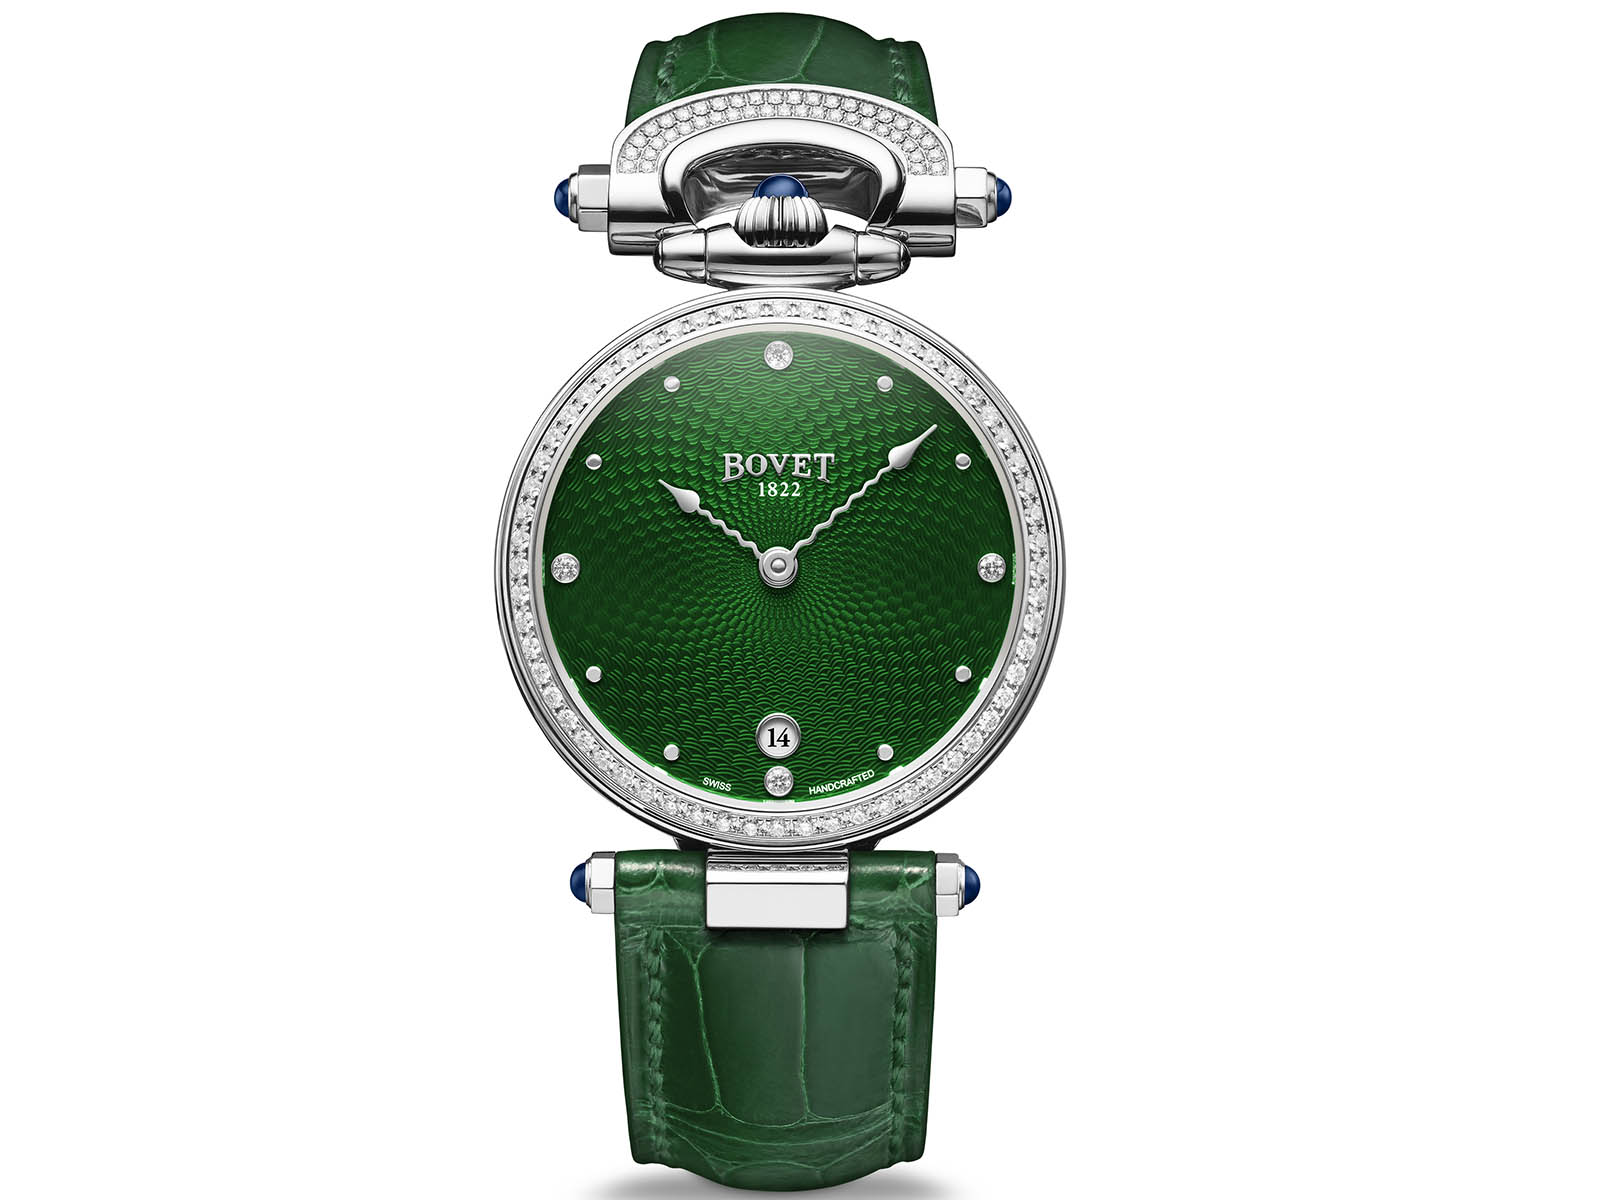 as36011-sd12-bovet-amadeo-fleurier-36-miss-audrey-5.jpg